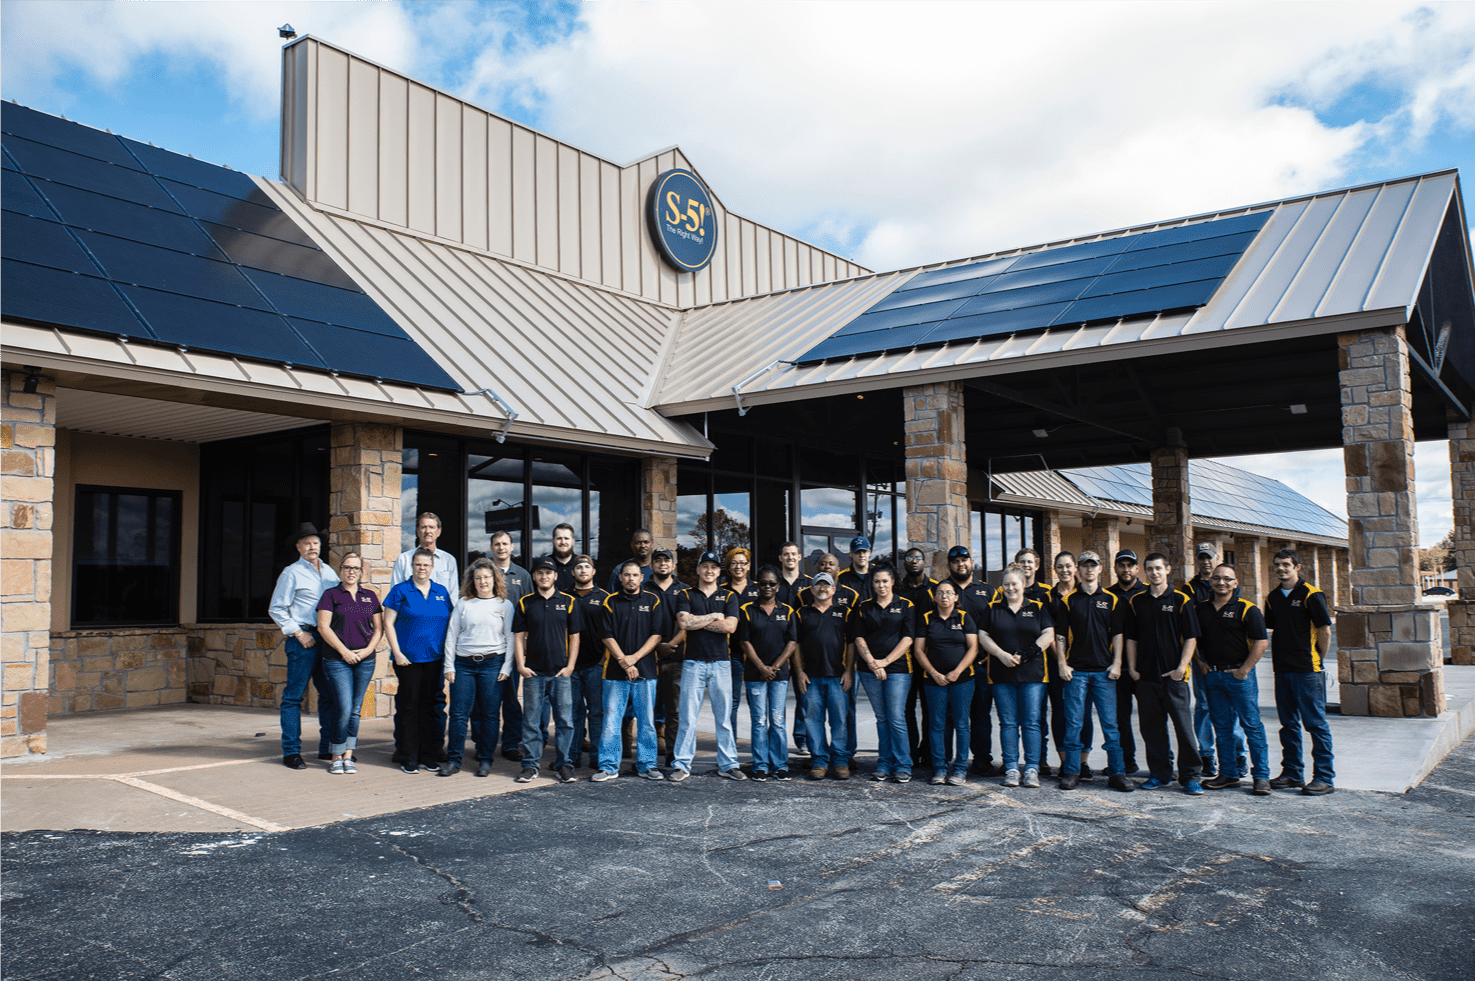 S-5!® Manufacturing plant staff outside exterior of facility-min